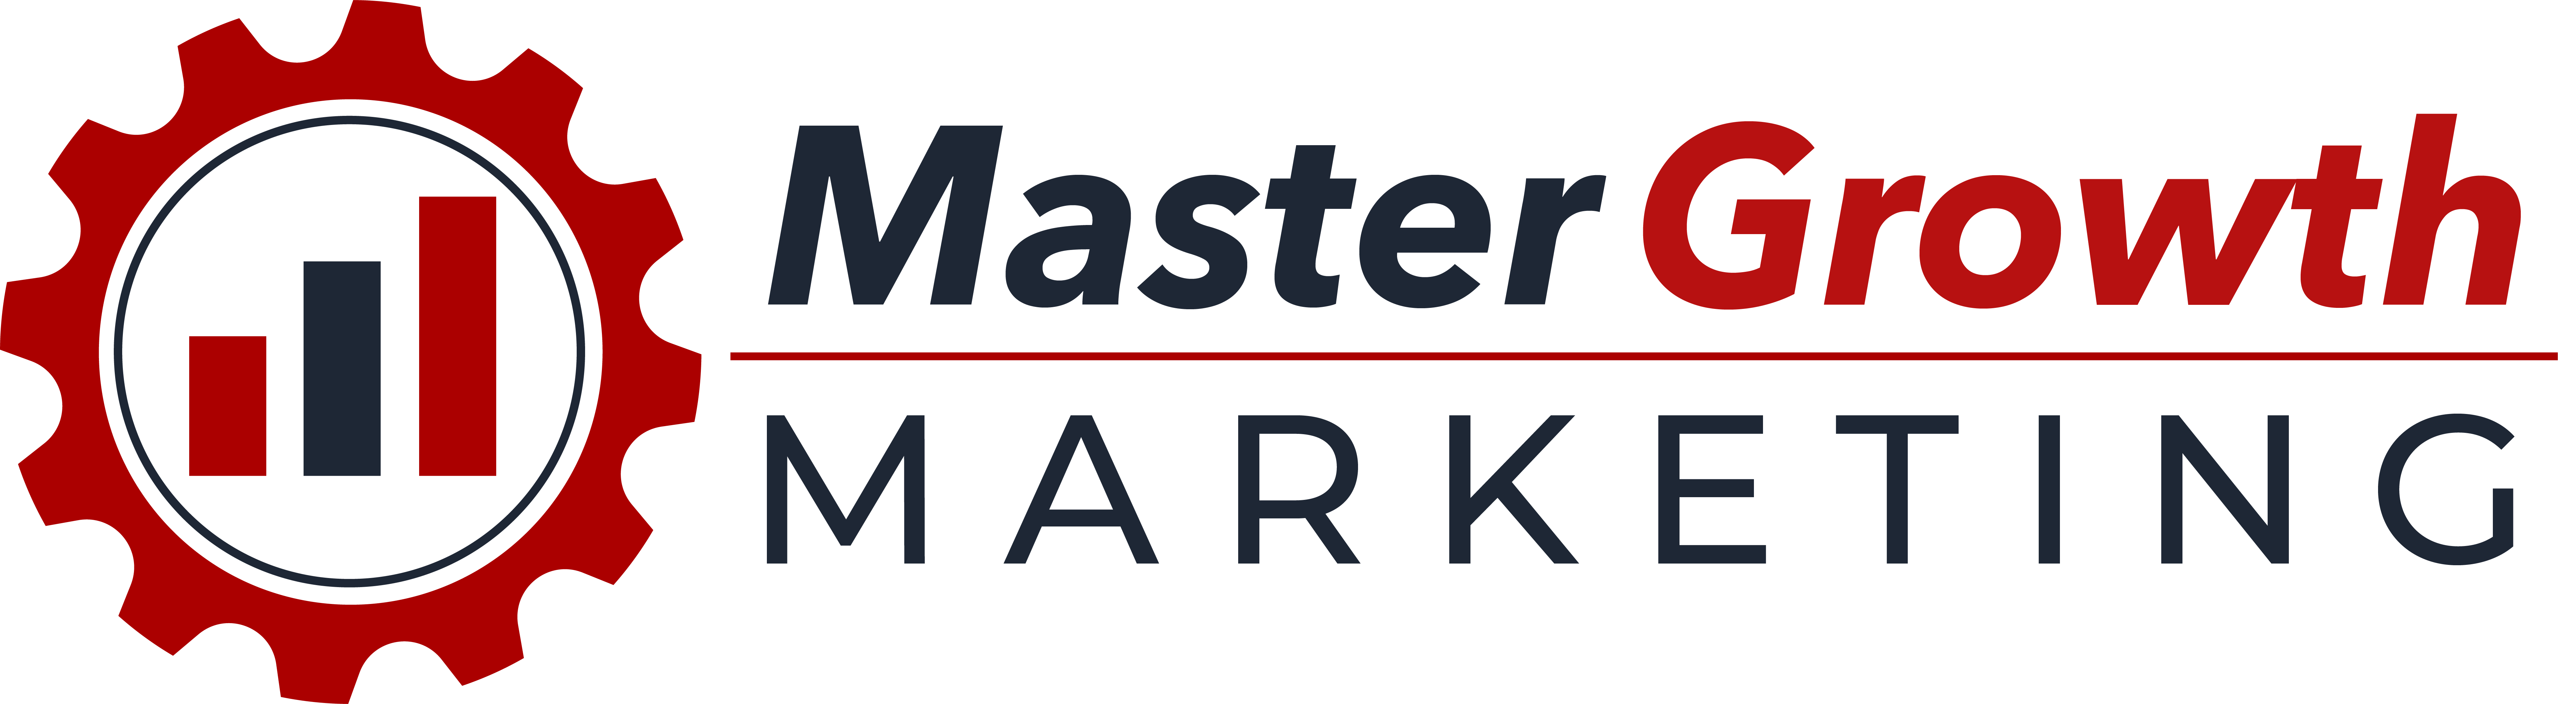 Master Growth Marketing